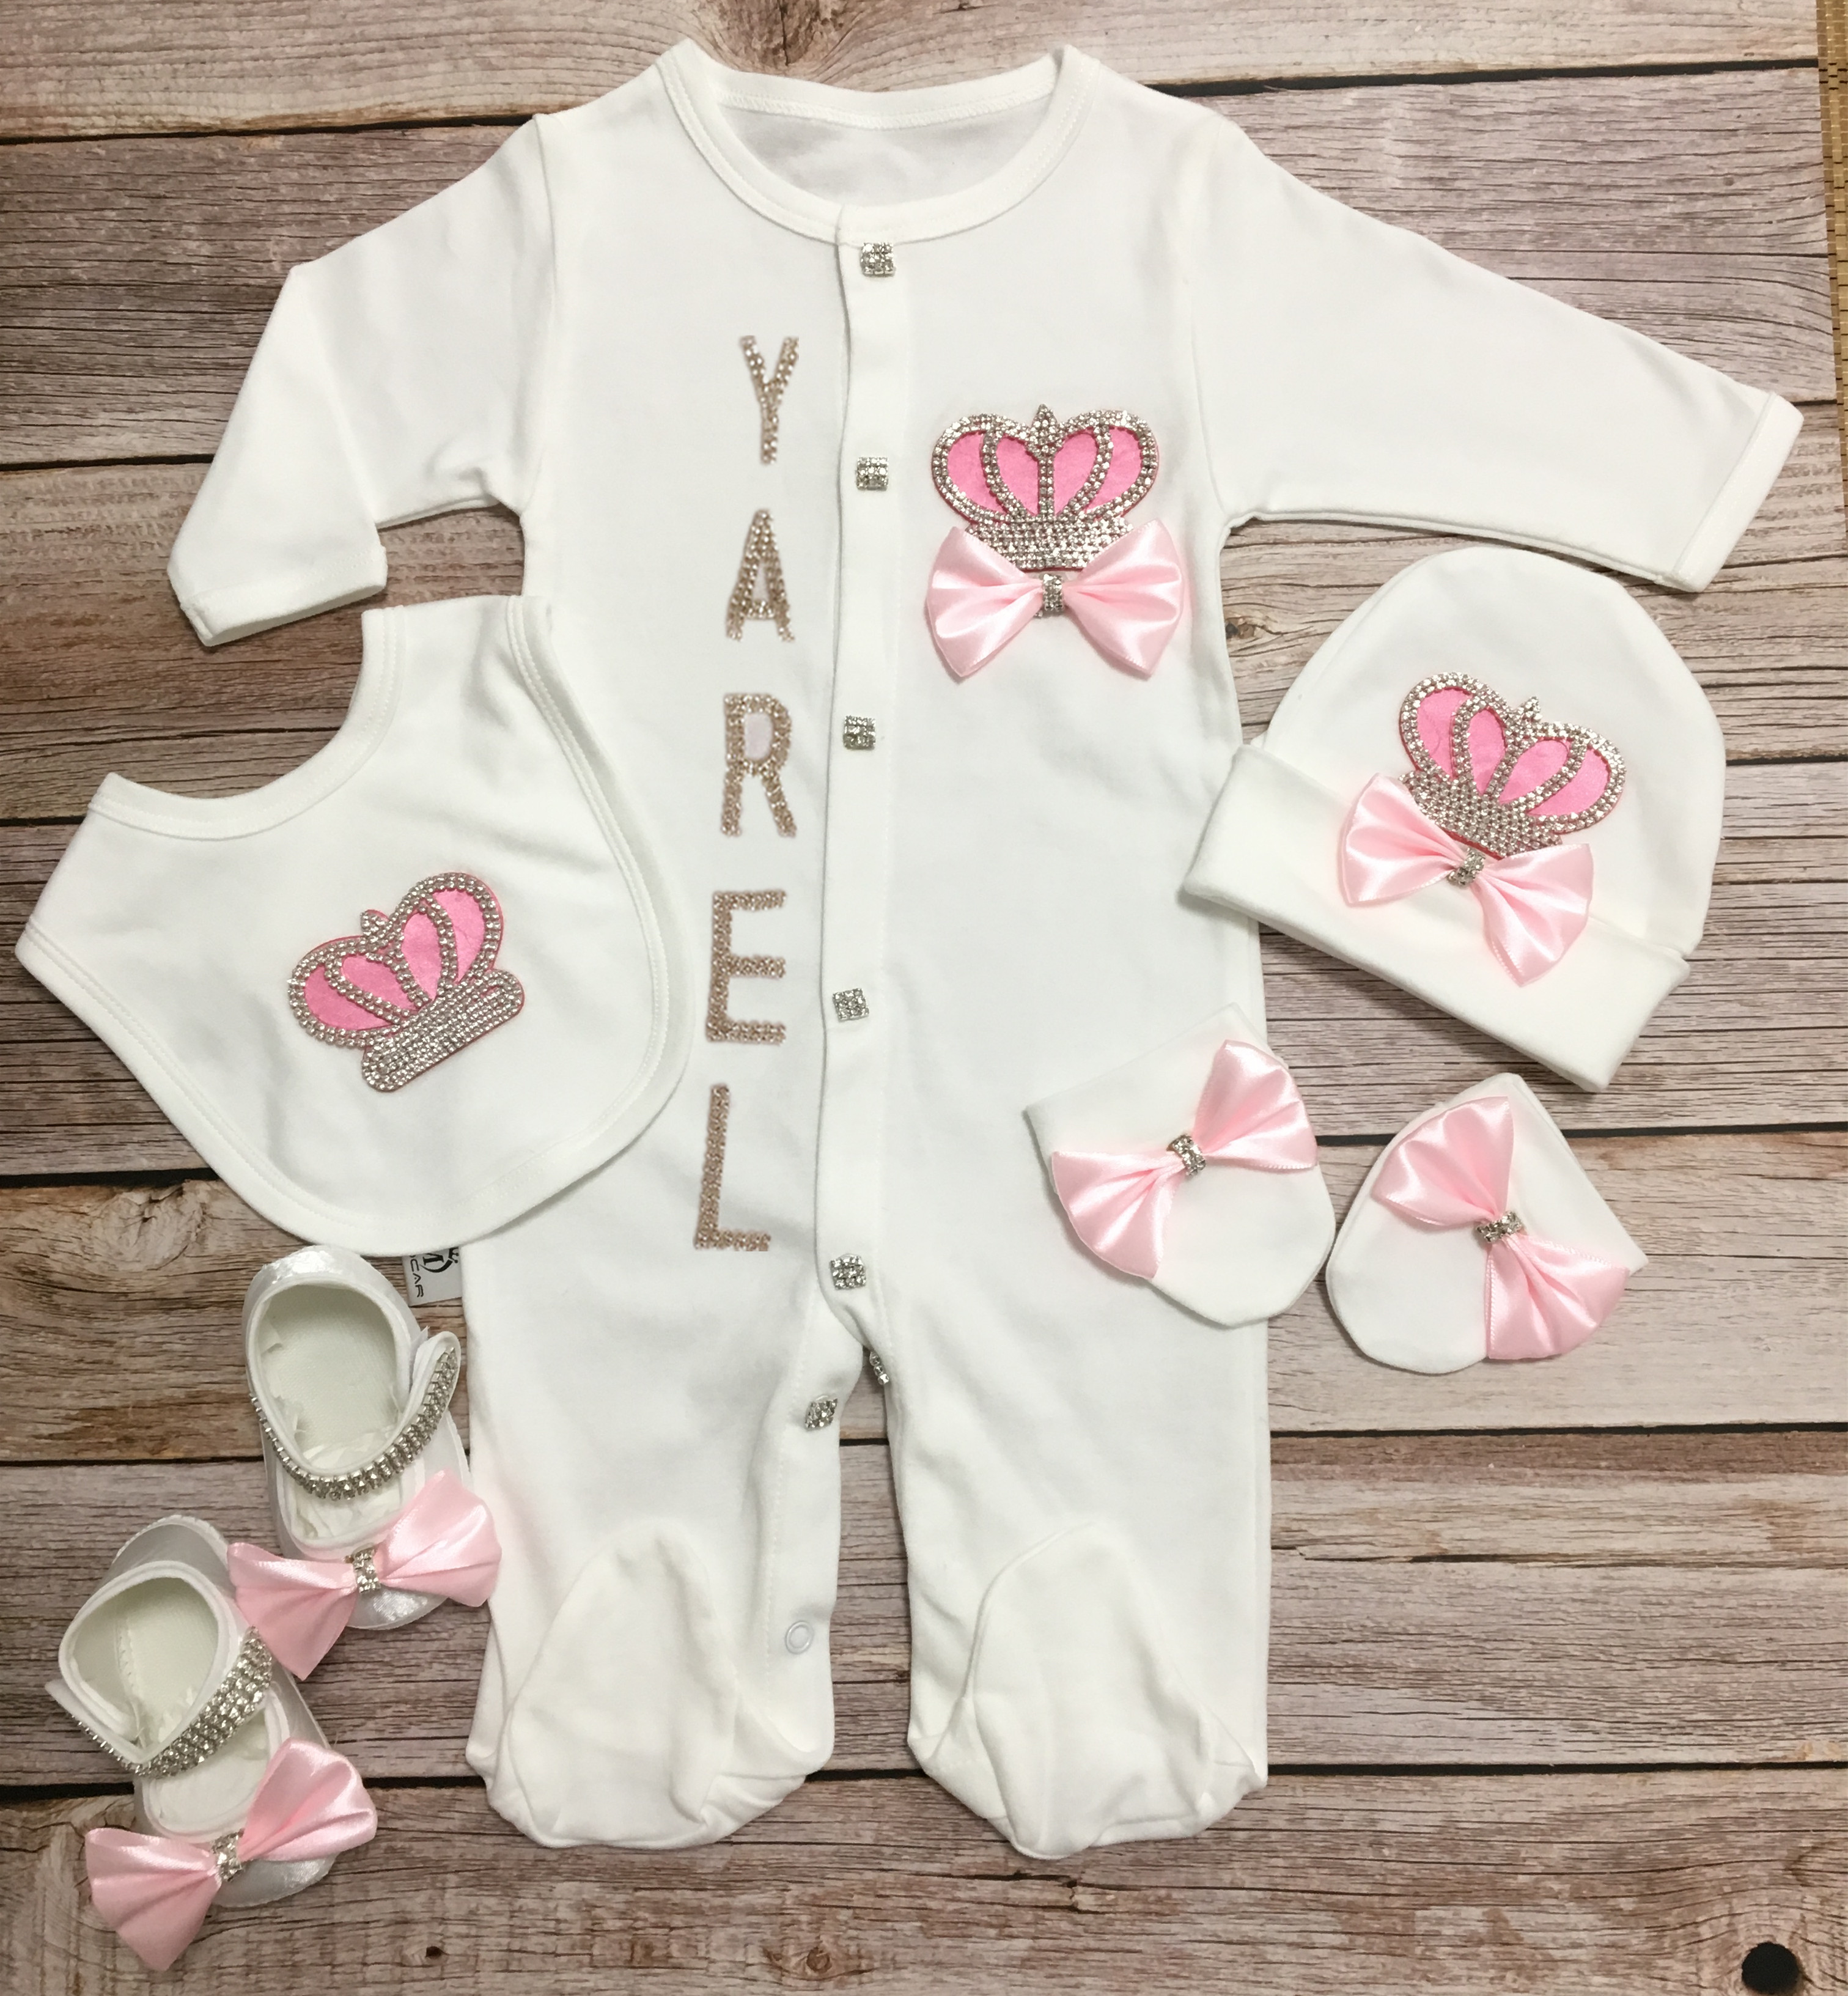 MIYOCAR 0-6m with gift box custom name baby crown rhinestone clothes set one piece bodysuit set baby shower gift S6-C image